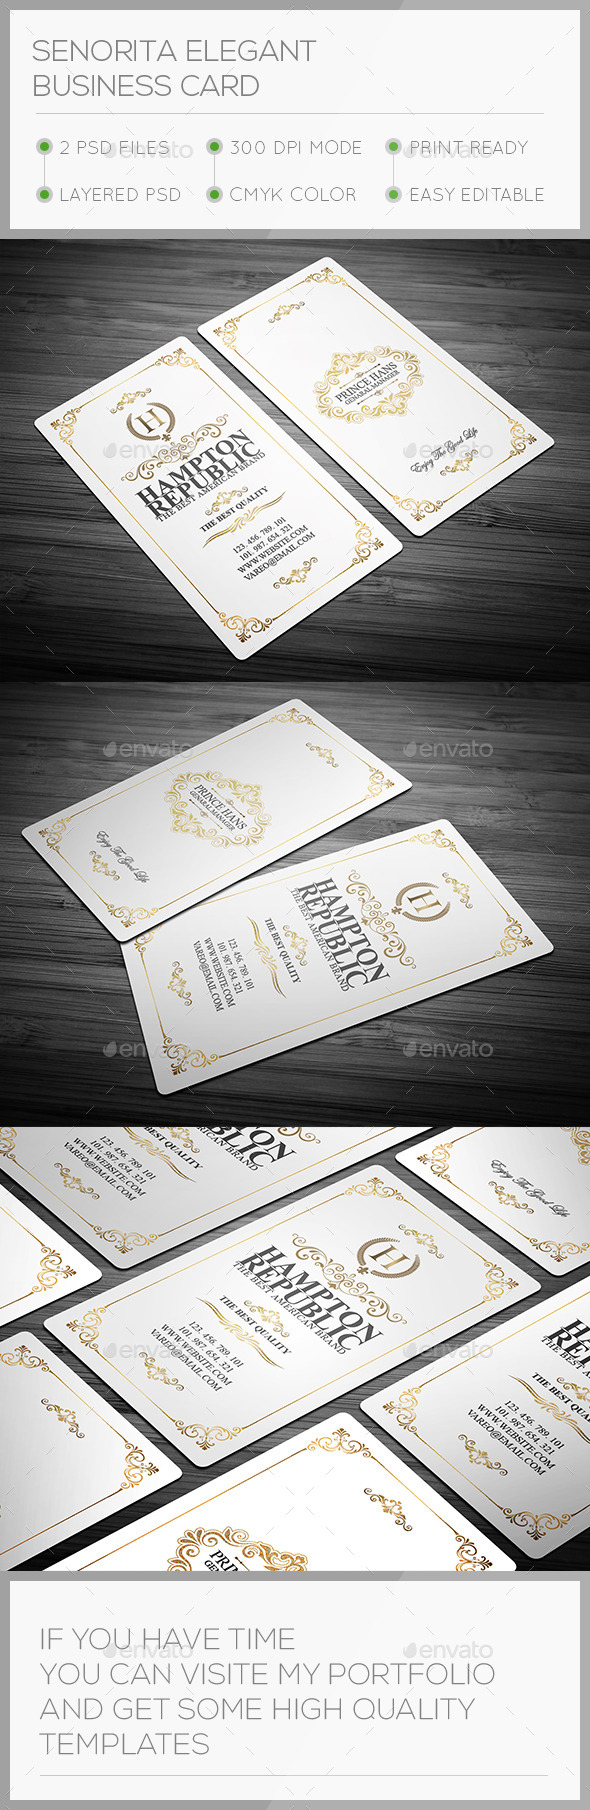 GraphicRiver Senorita Elegant Business Card 11105187